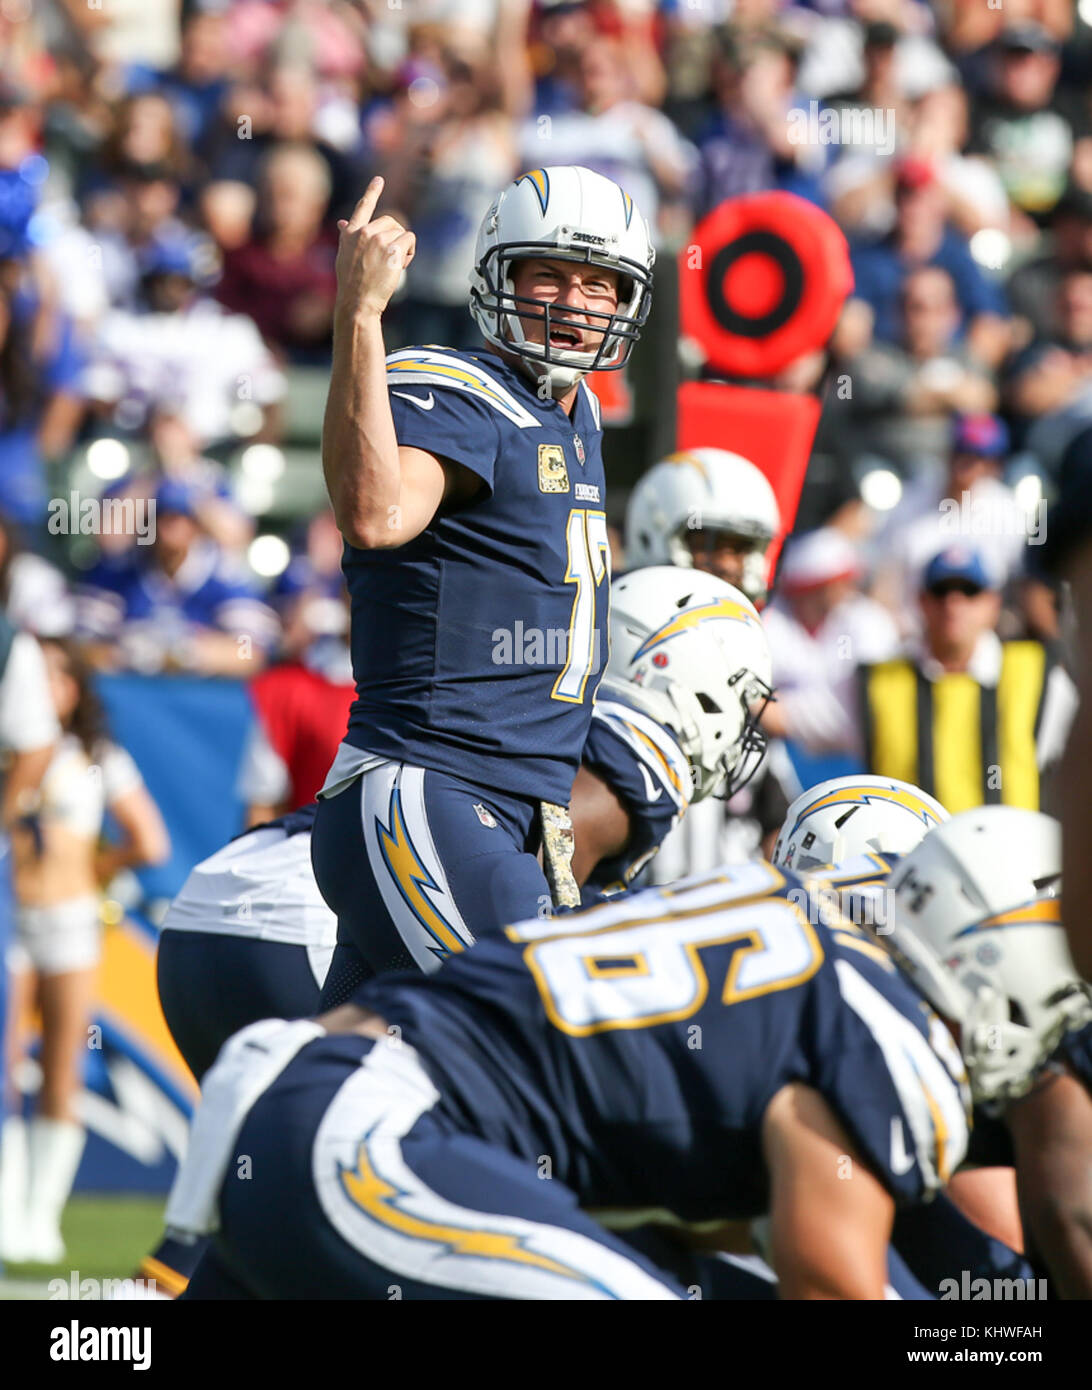 5a203c1fd69 Los Angeles Chargers quarterback Philip Rivers  17 making a call during the NFL  Buffalo Bills vs Los Angeles Chargers at the Stubhub Center in Carson